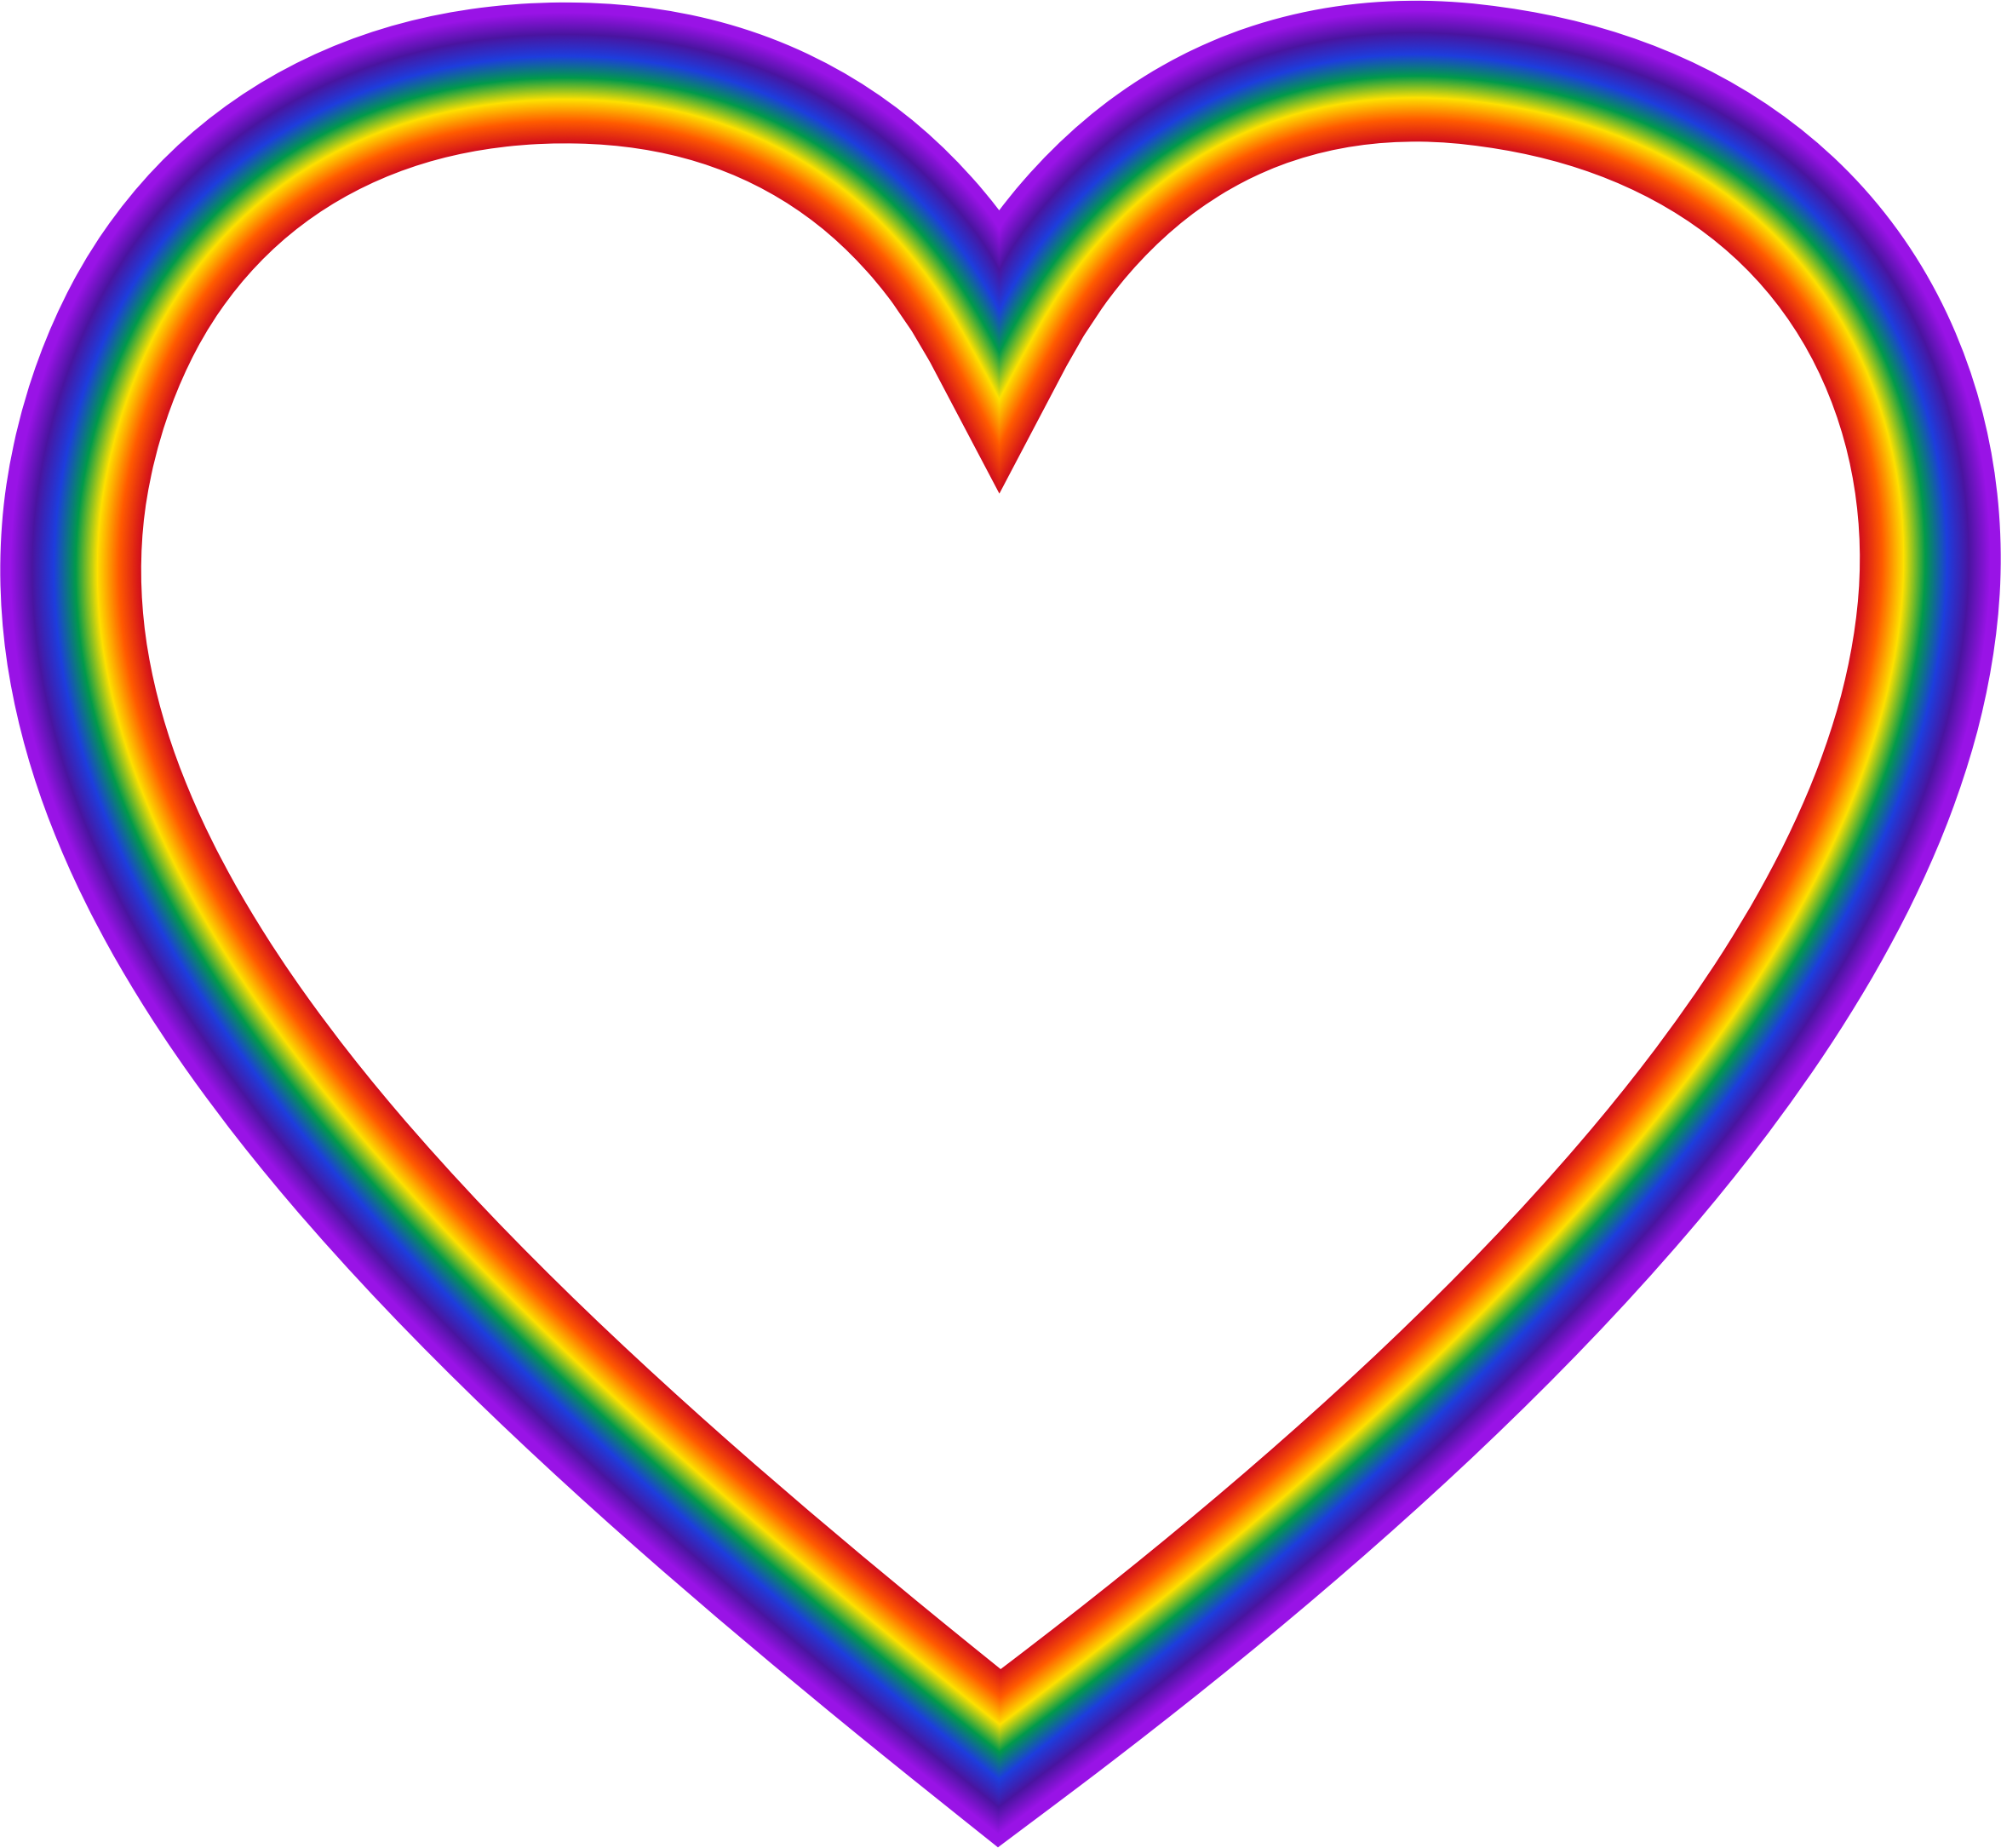 Rainbow Heart by GDJ